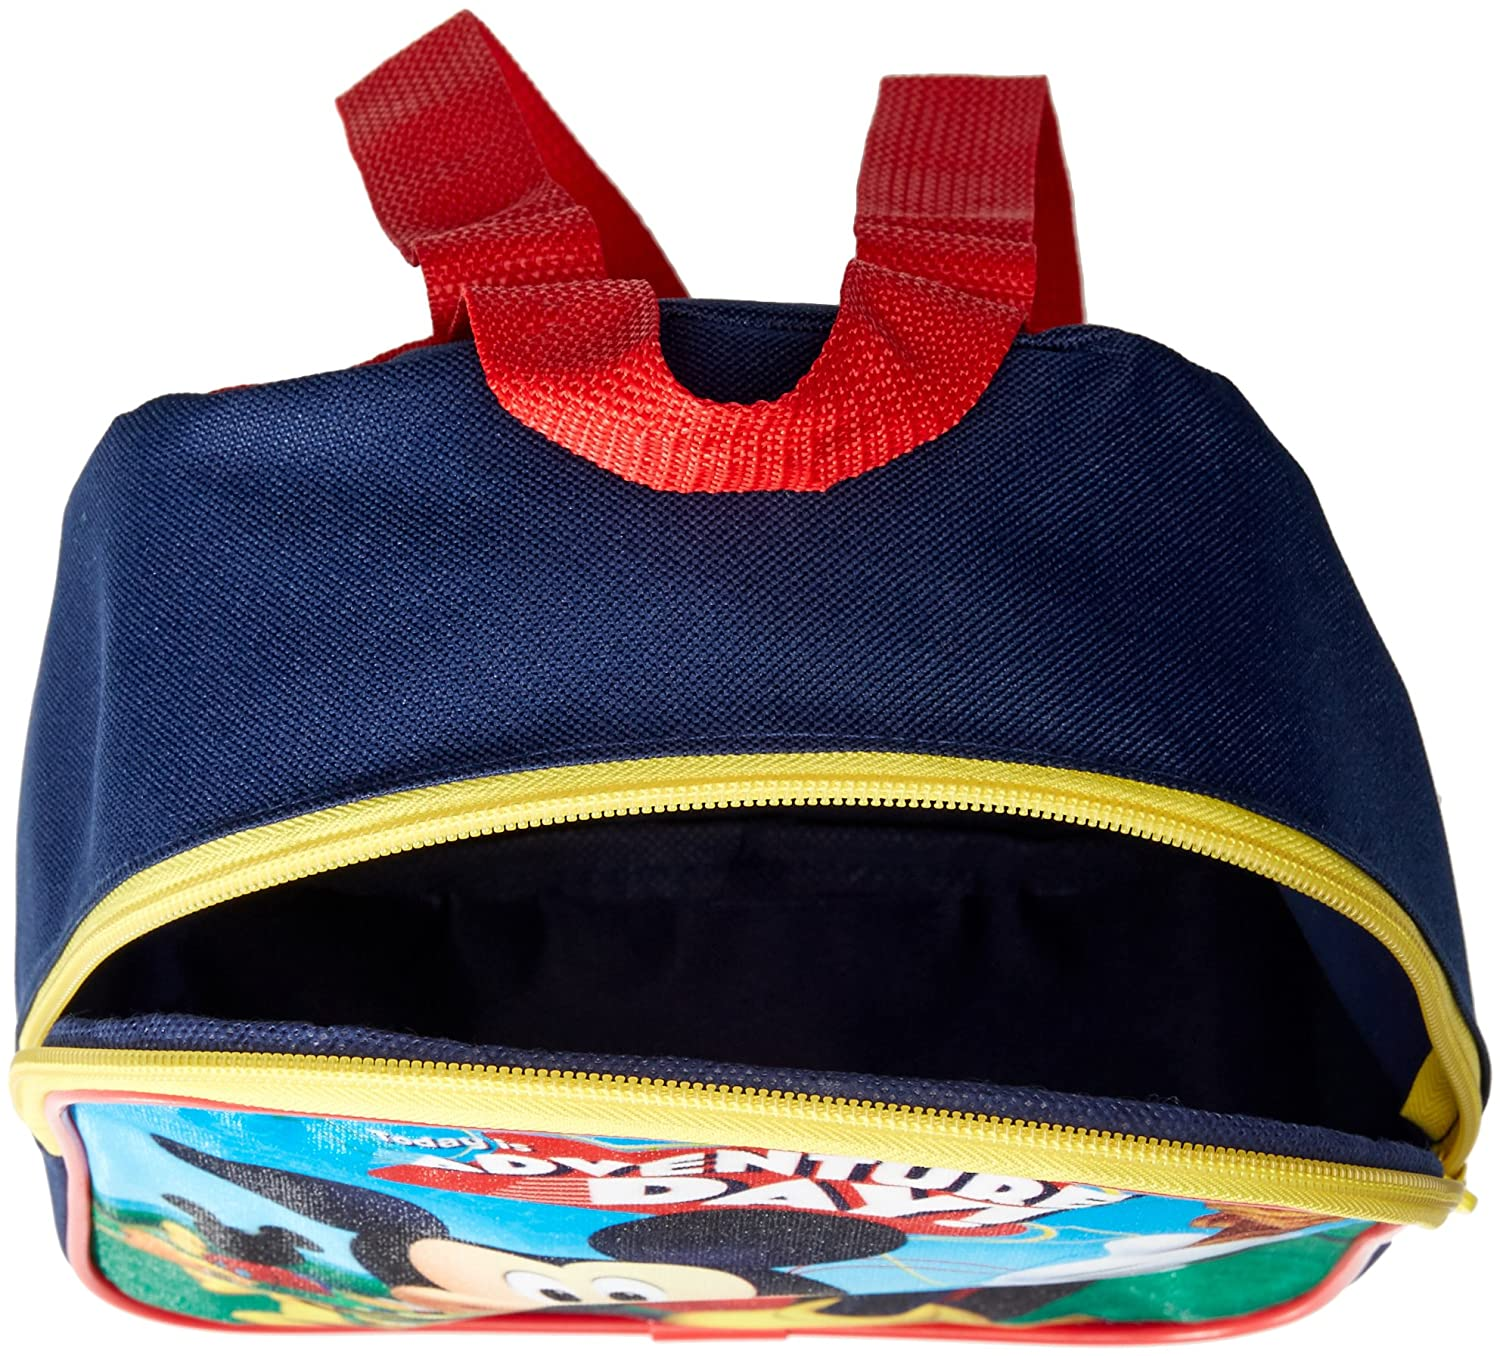 Disney Mickey Mouse Adventure Backpack Image 3